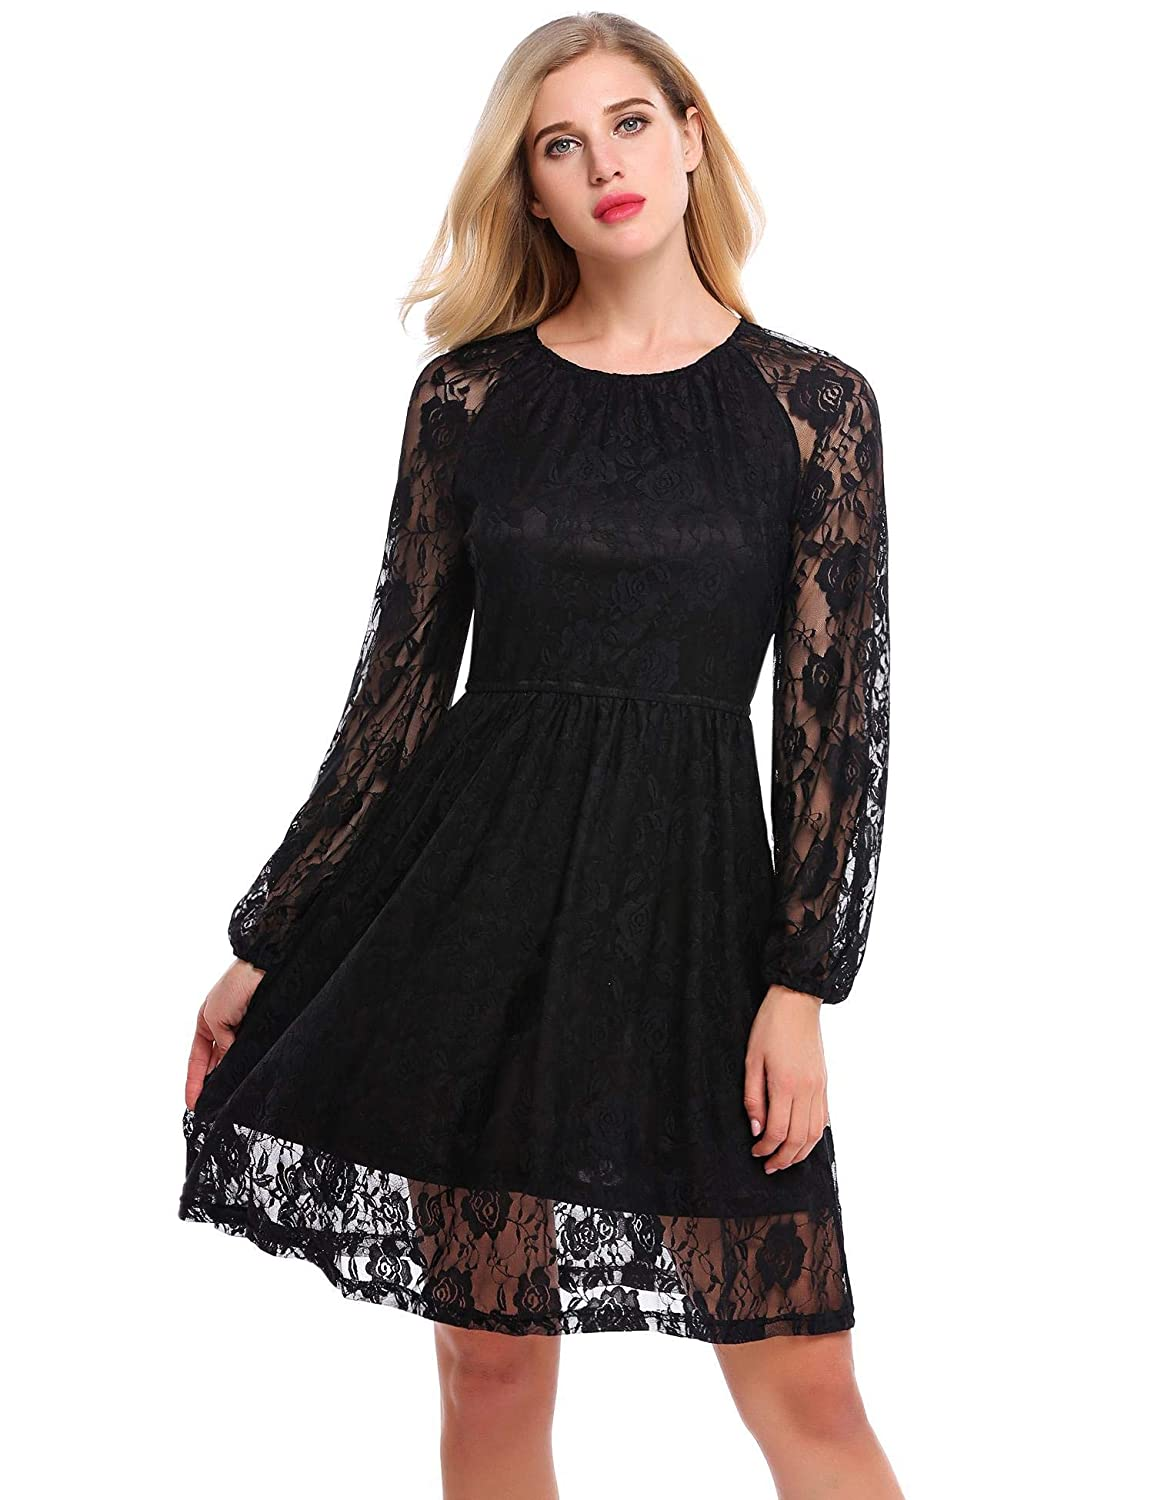 8b478a380f67d ACEVOG Women Floral Lace Long Sleeve A-Line Elastic Pleated Cocktail Party  Dress at Amazon Women's Clothing store: